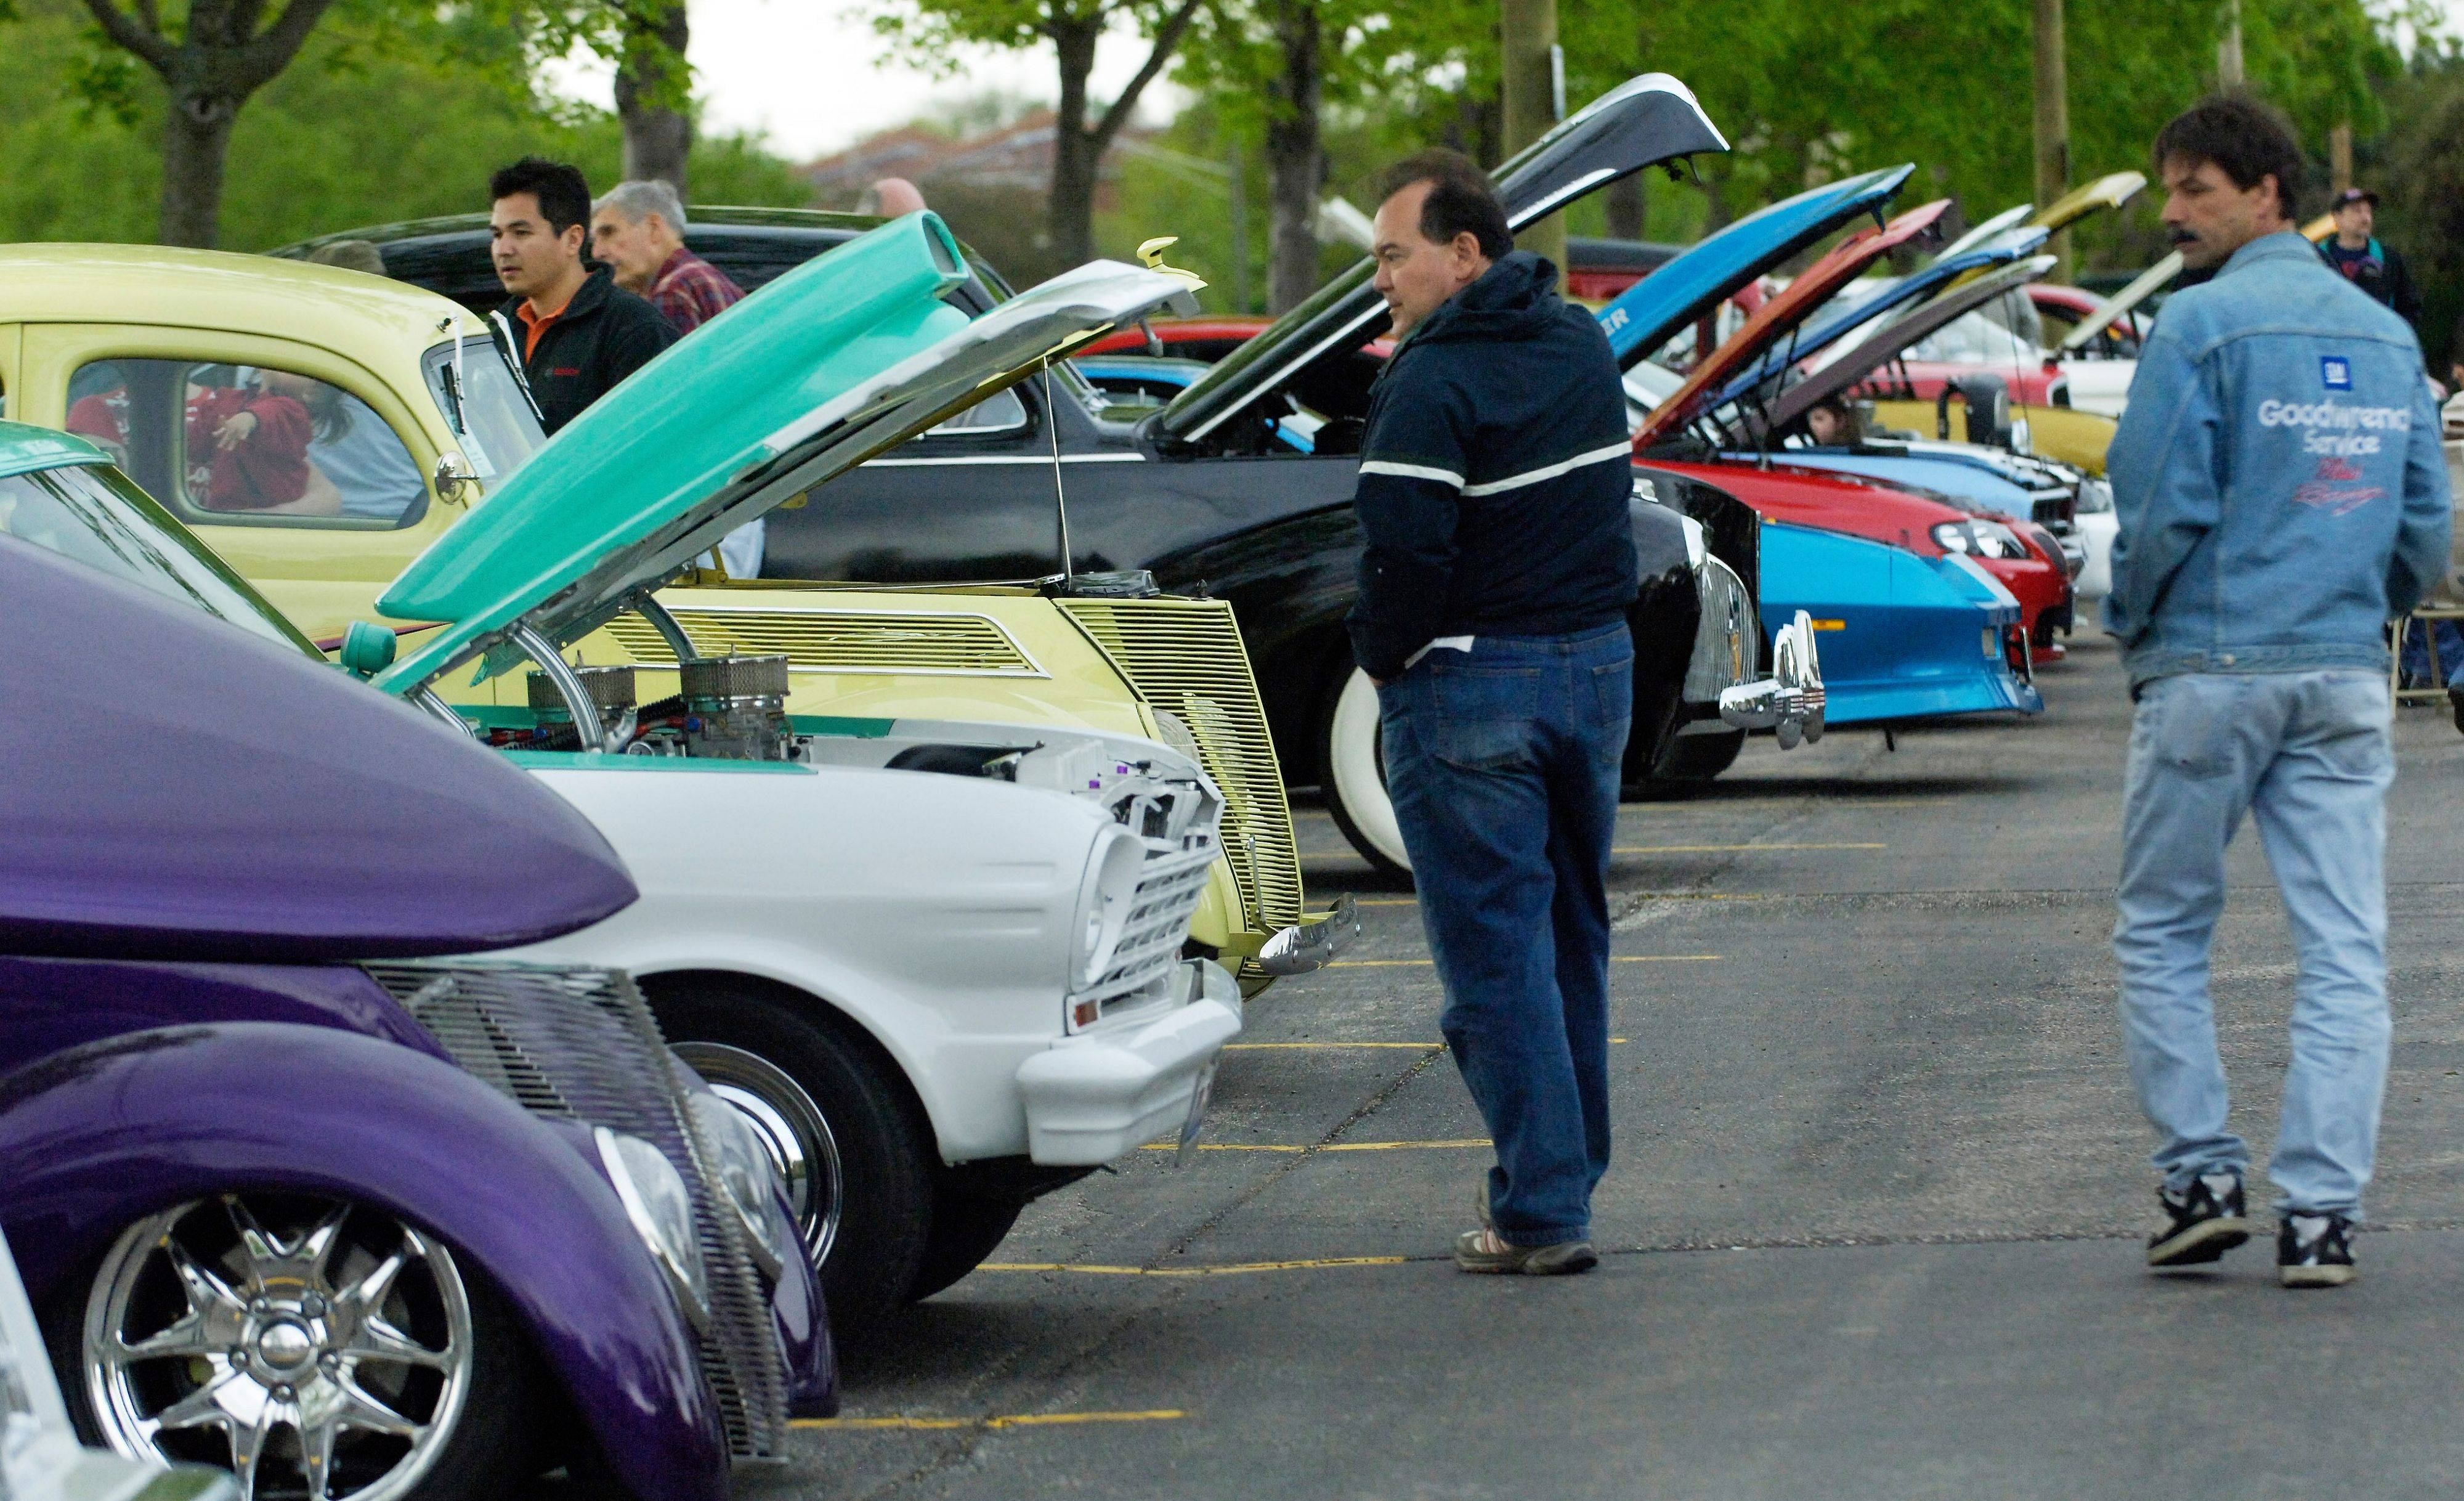 Antique cars are on display at the Metra station parking lot for BluesMobile Cruise Night.